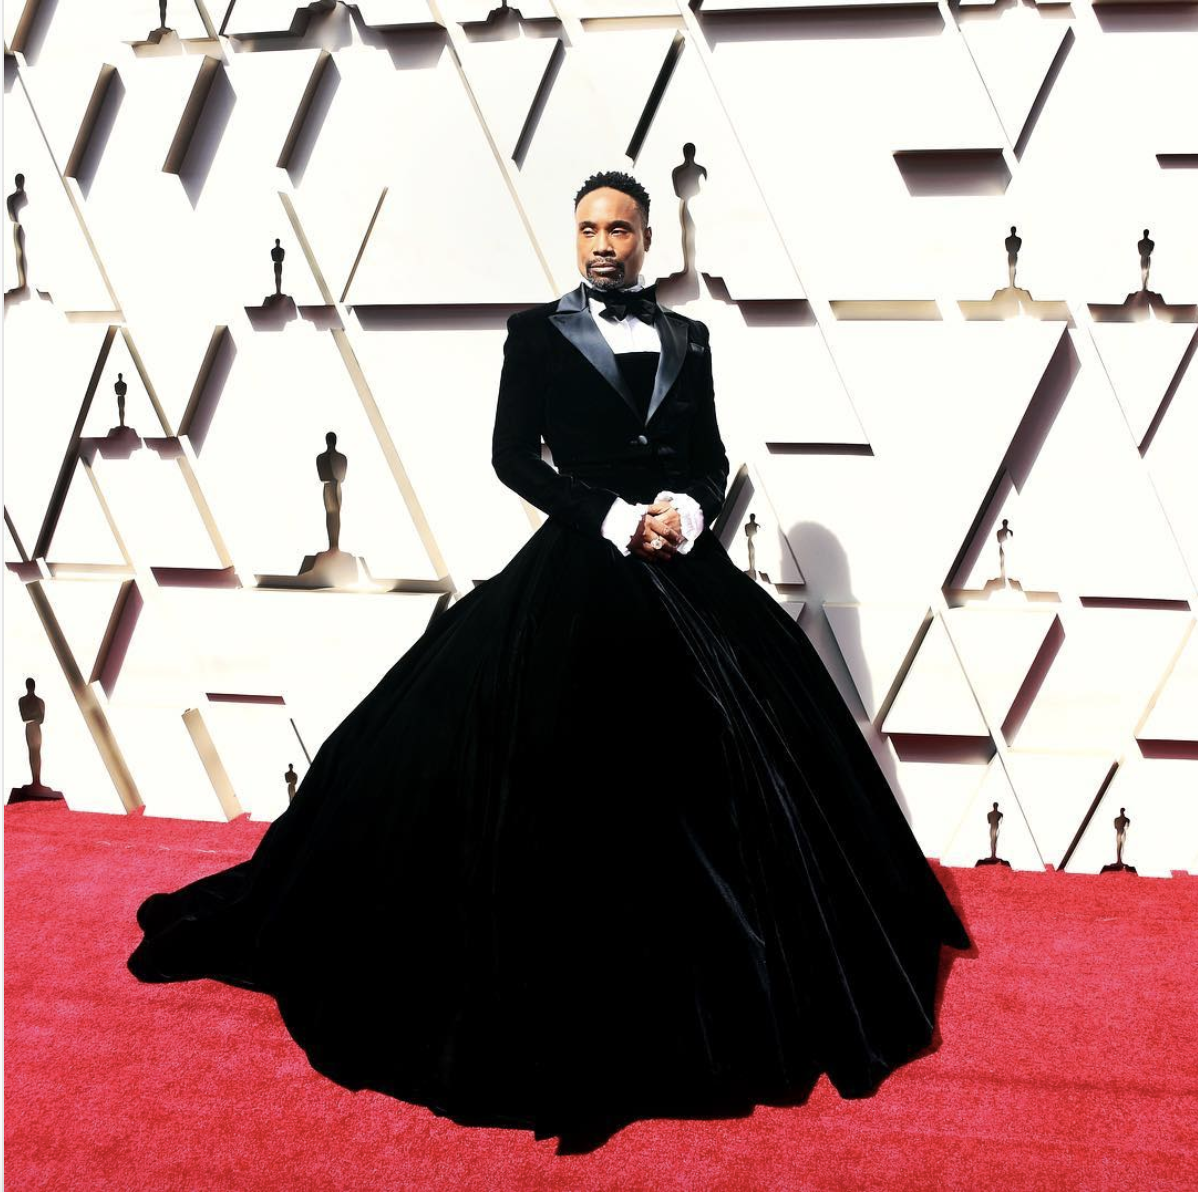 Billy Porter in Christian Siriano